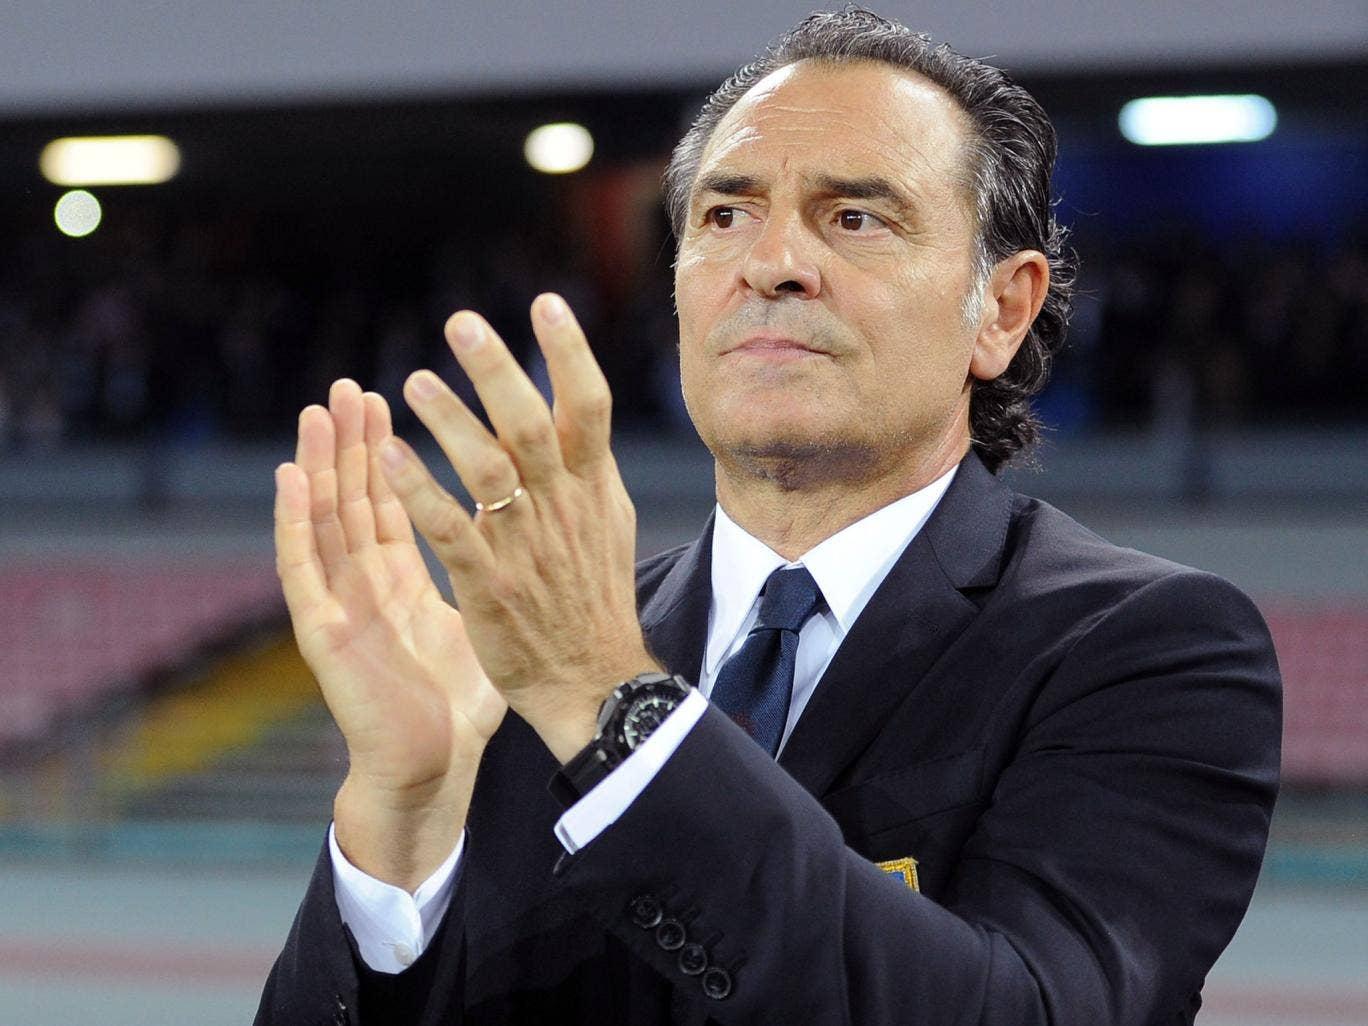 Italy manager Cesare Prandelli has been linked with a move to Tottenham to become manager after the 2014 World Cup